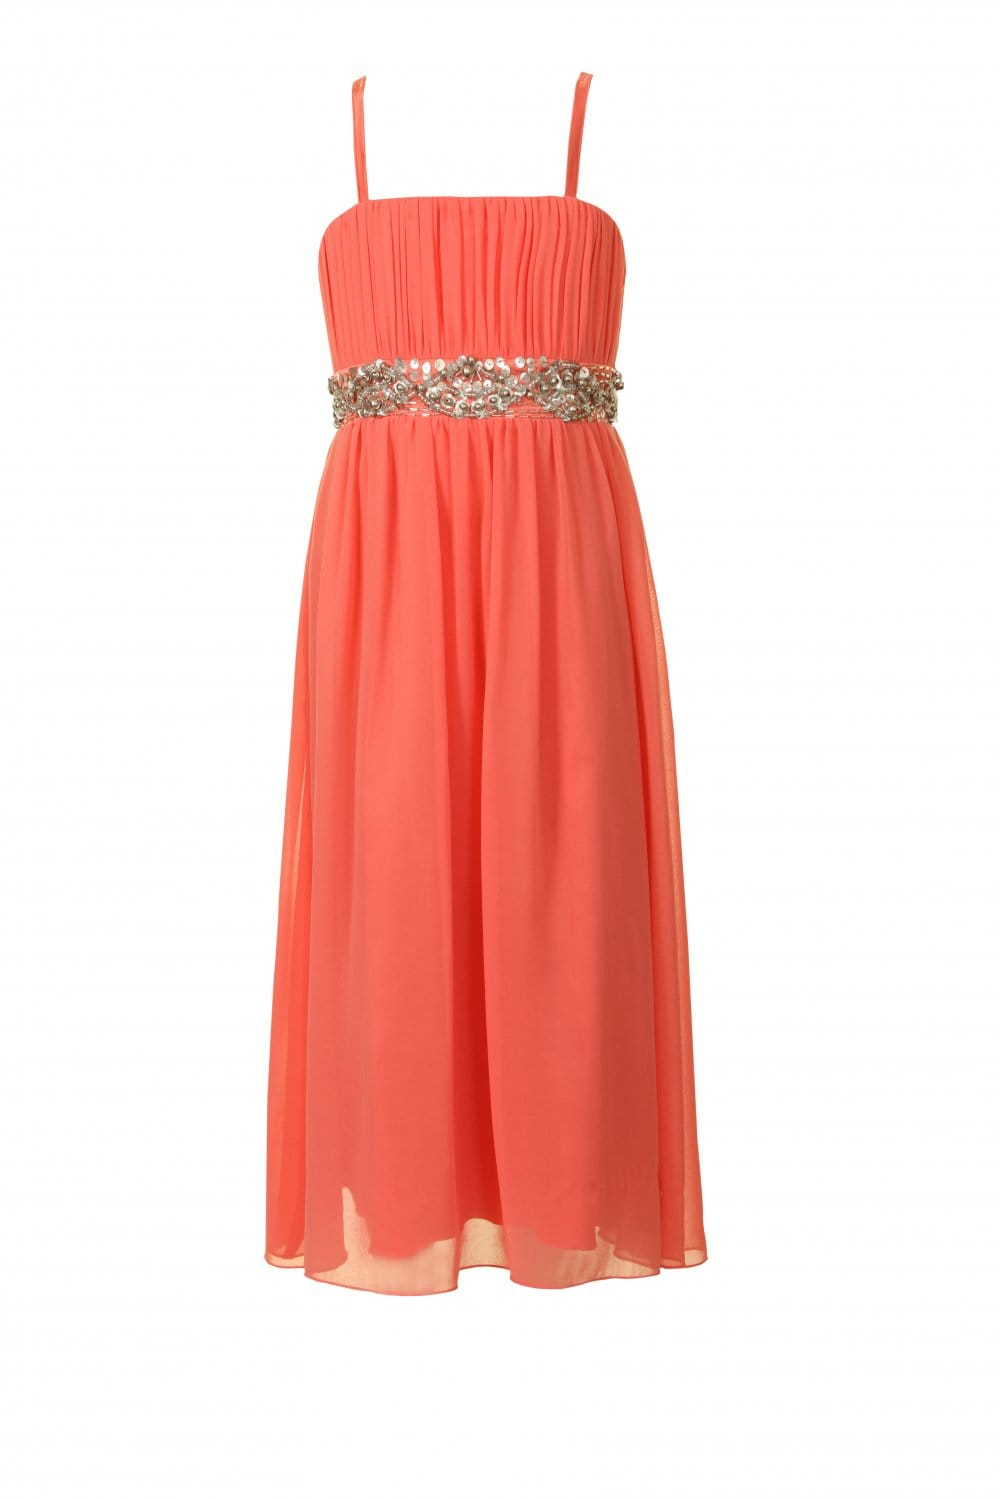 Little Misdress Coral Chiffon Embellished Party Dress